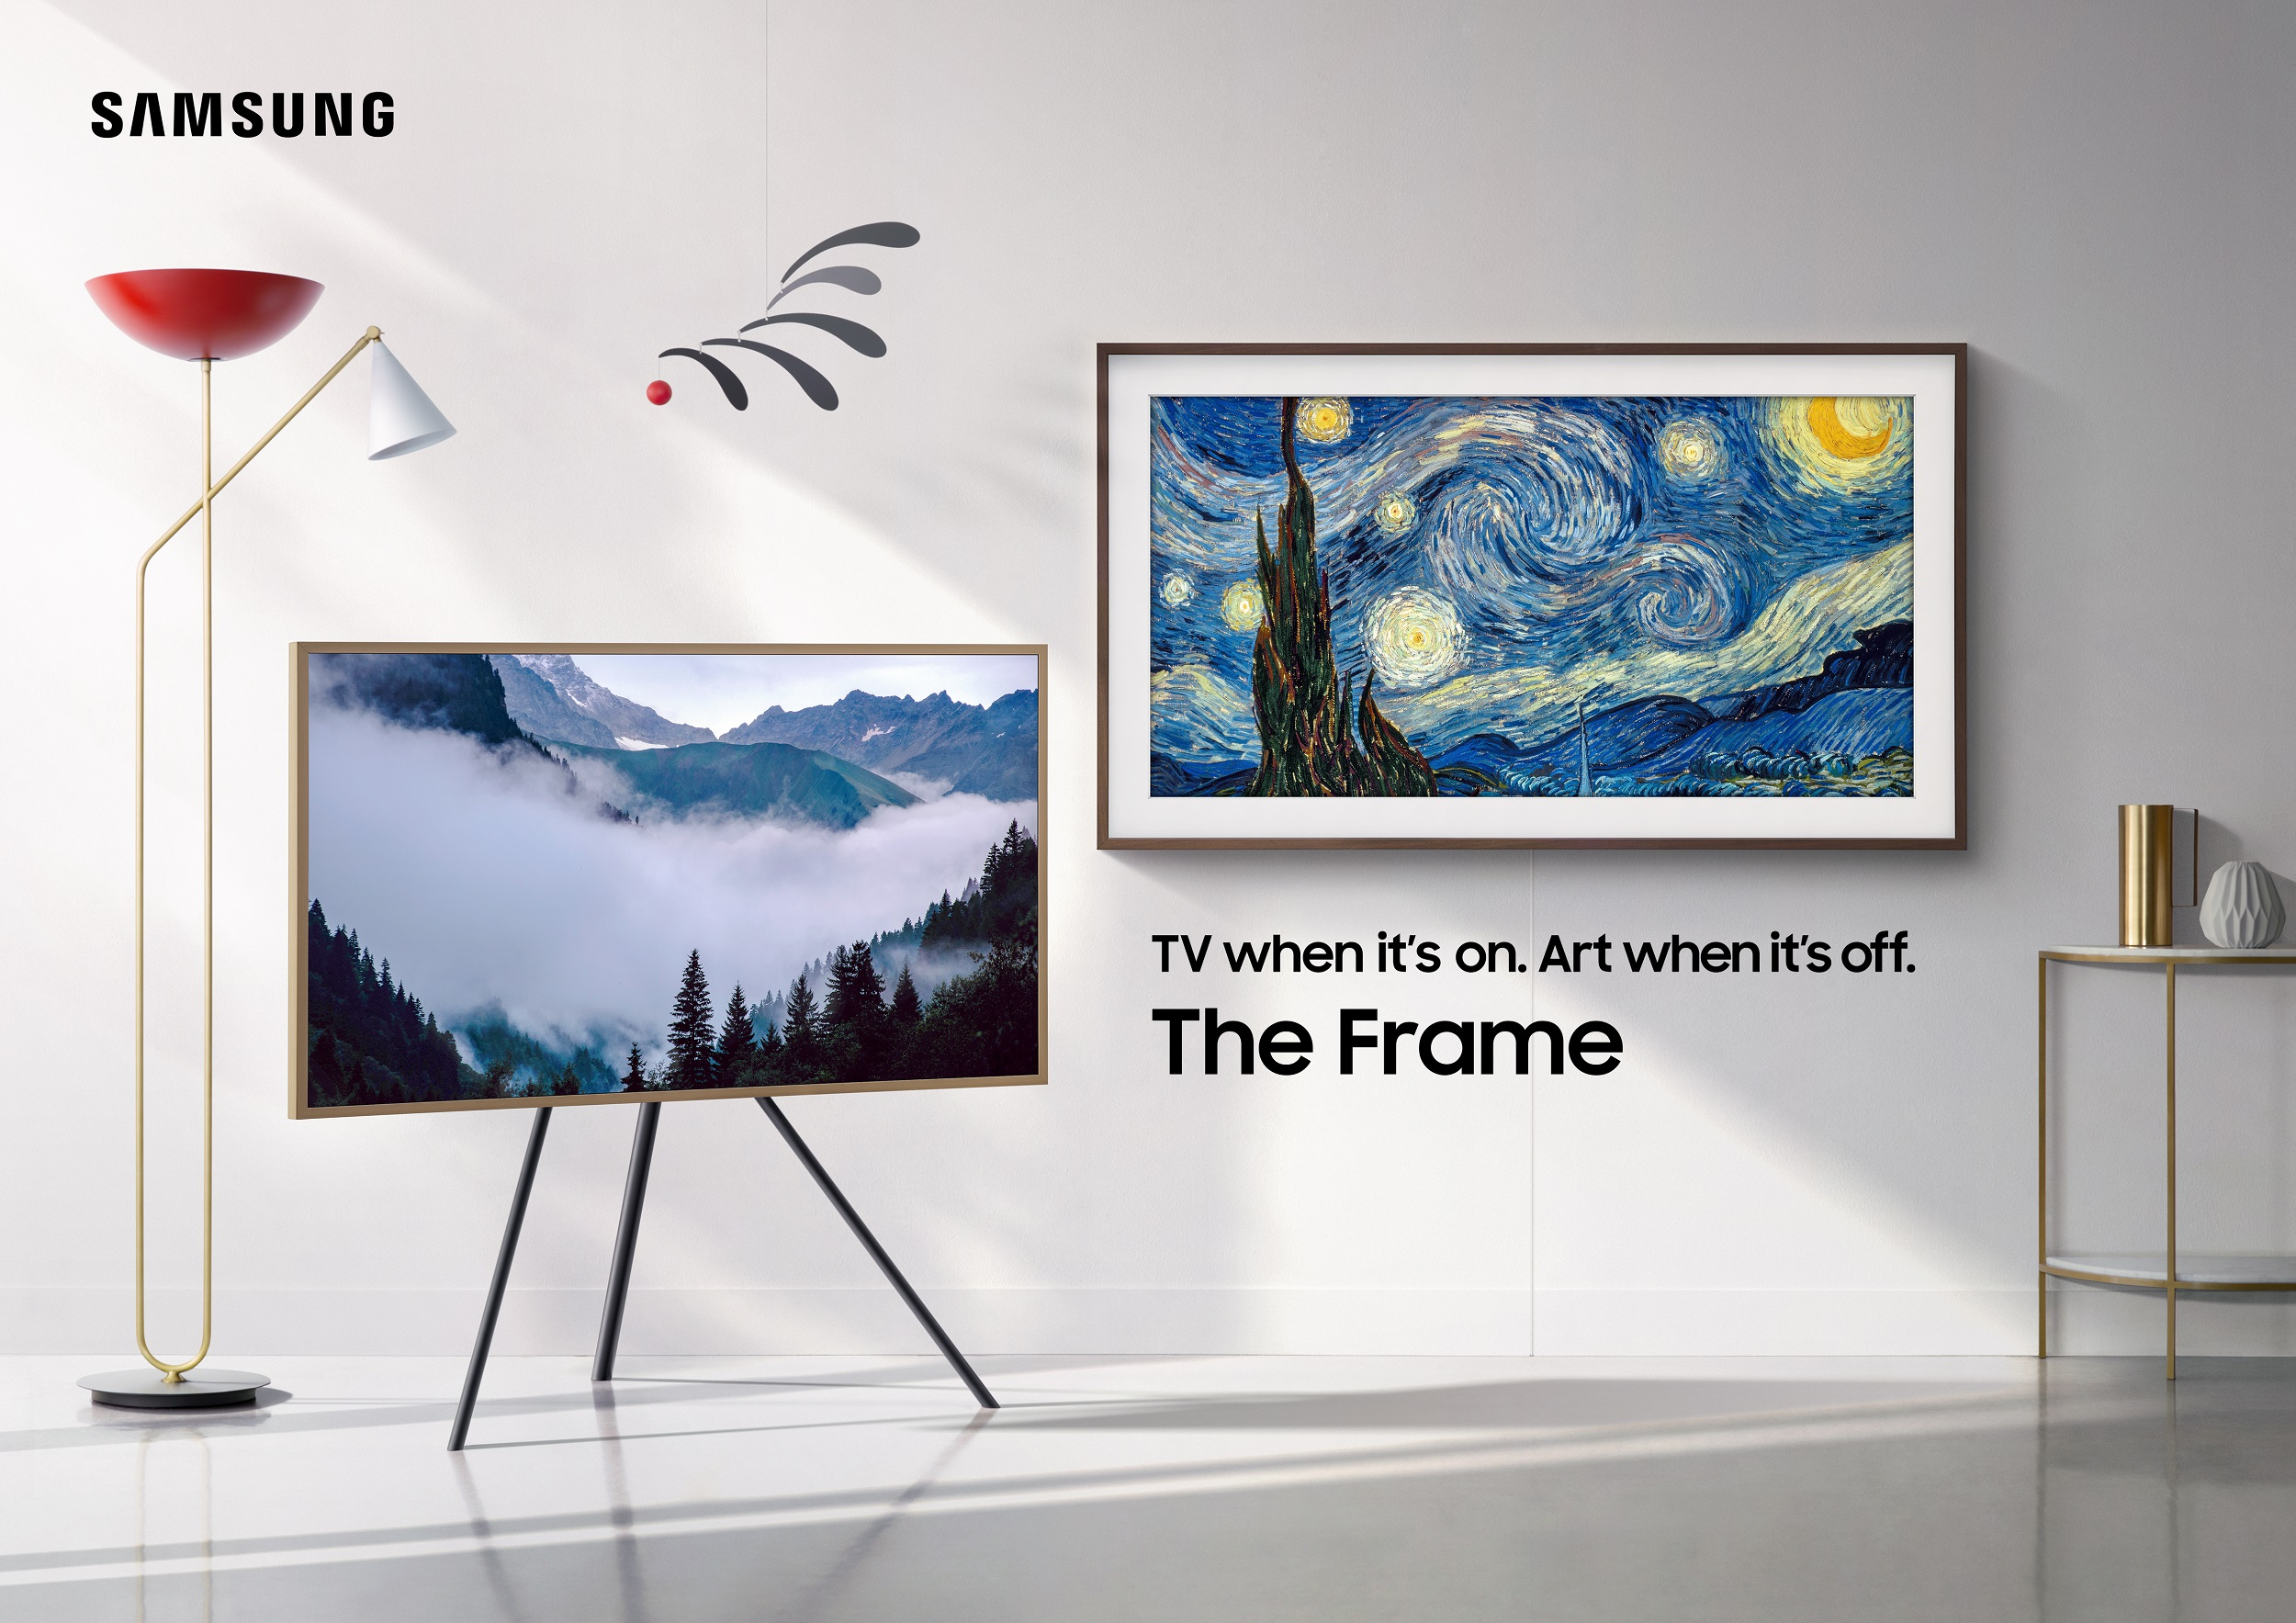 Samsung TV The Frame 2020